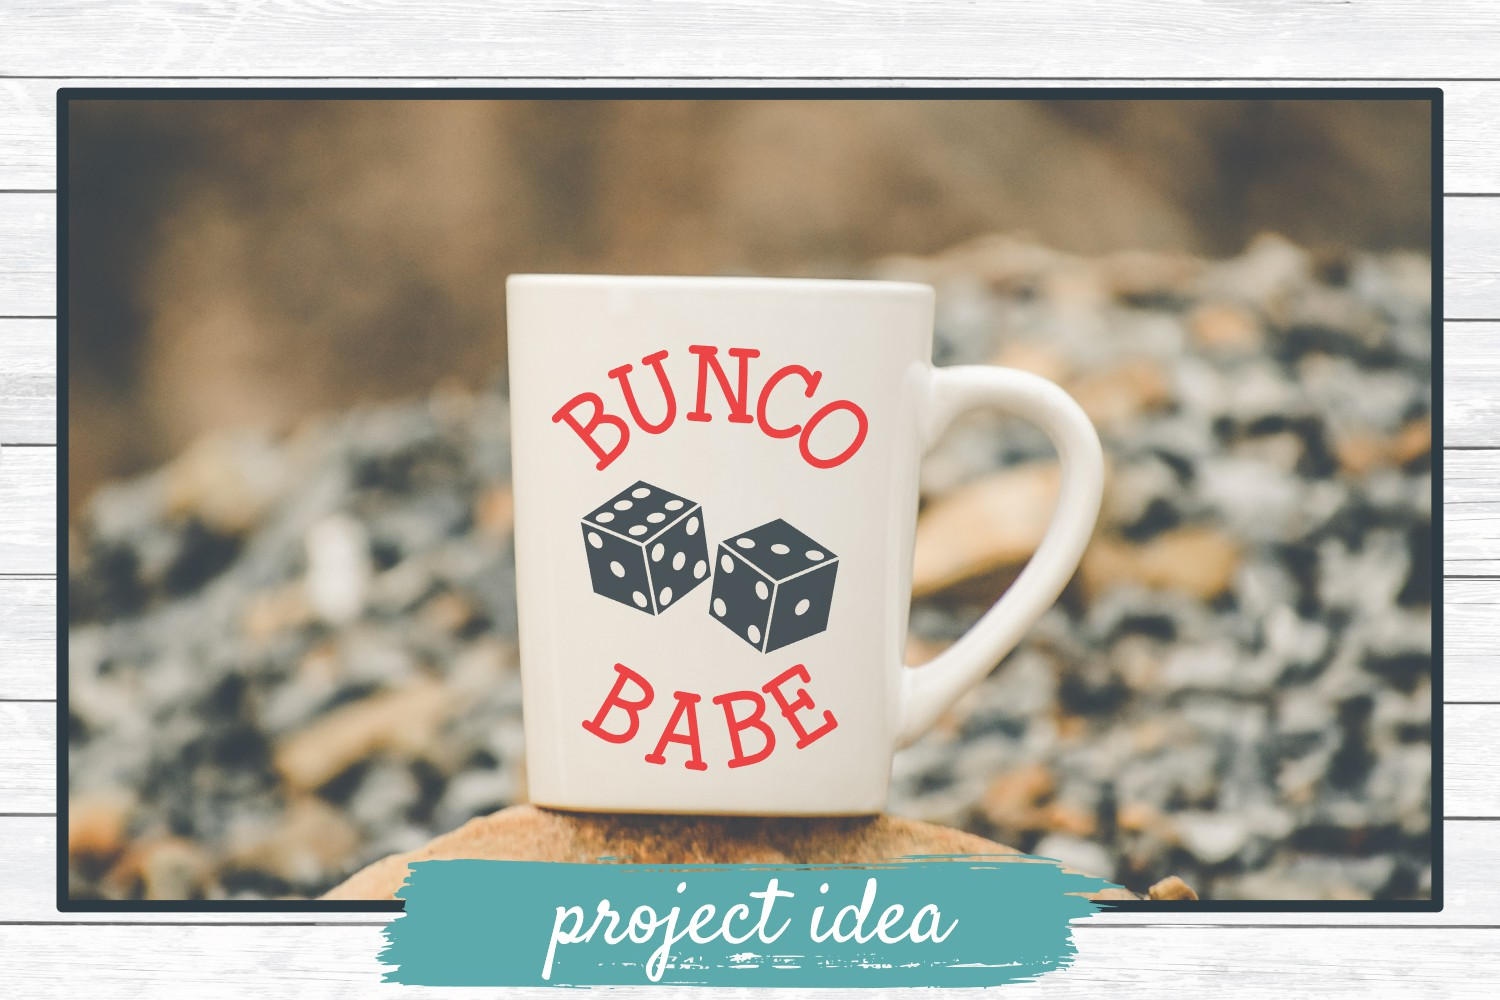 Bunco Babe, SVG Cut File for Crafters example image 2